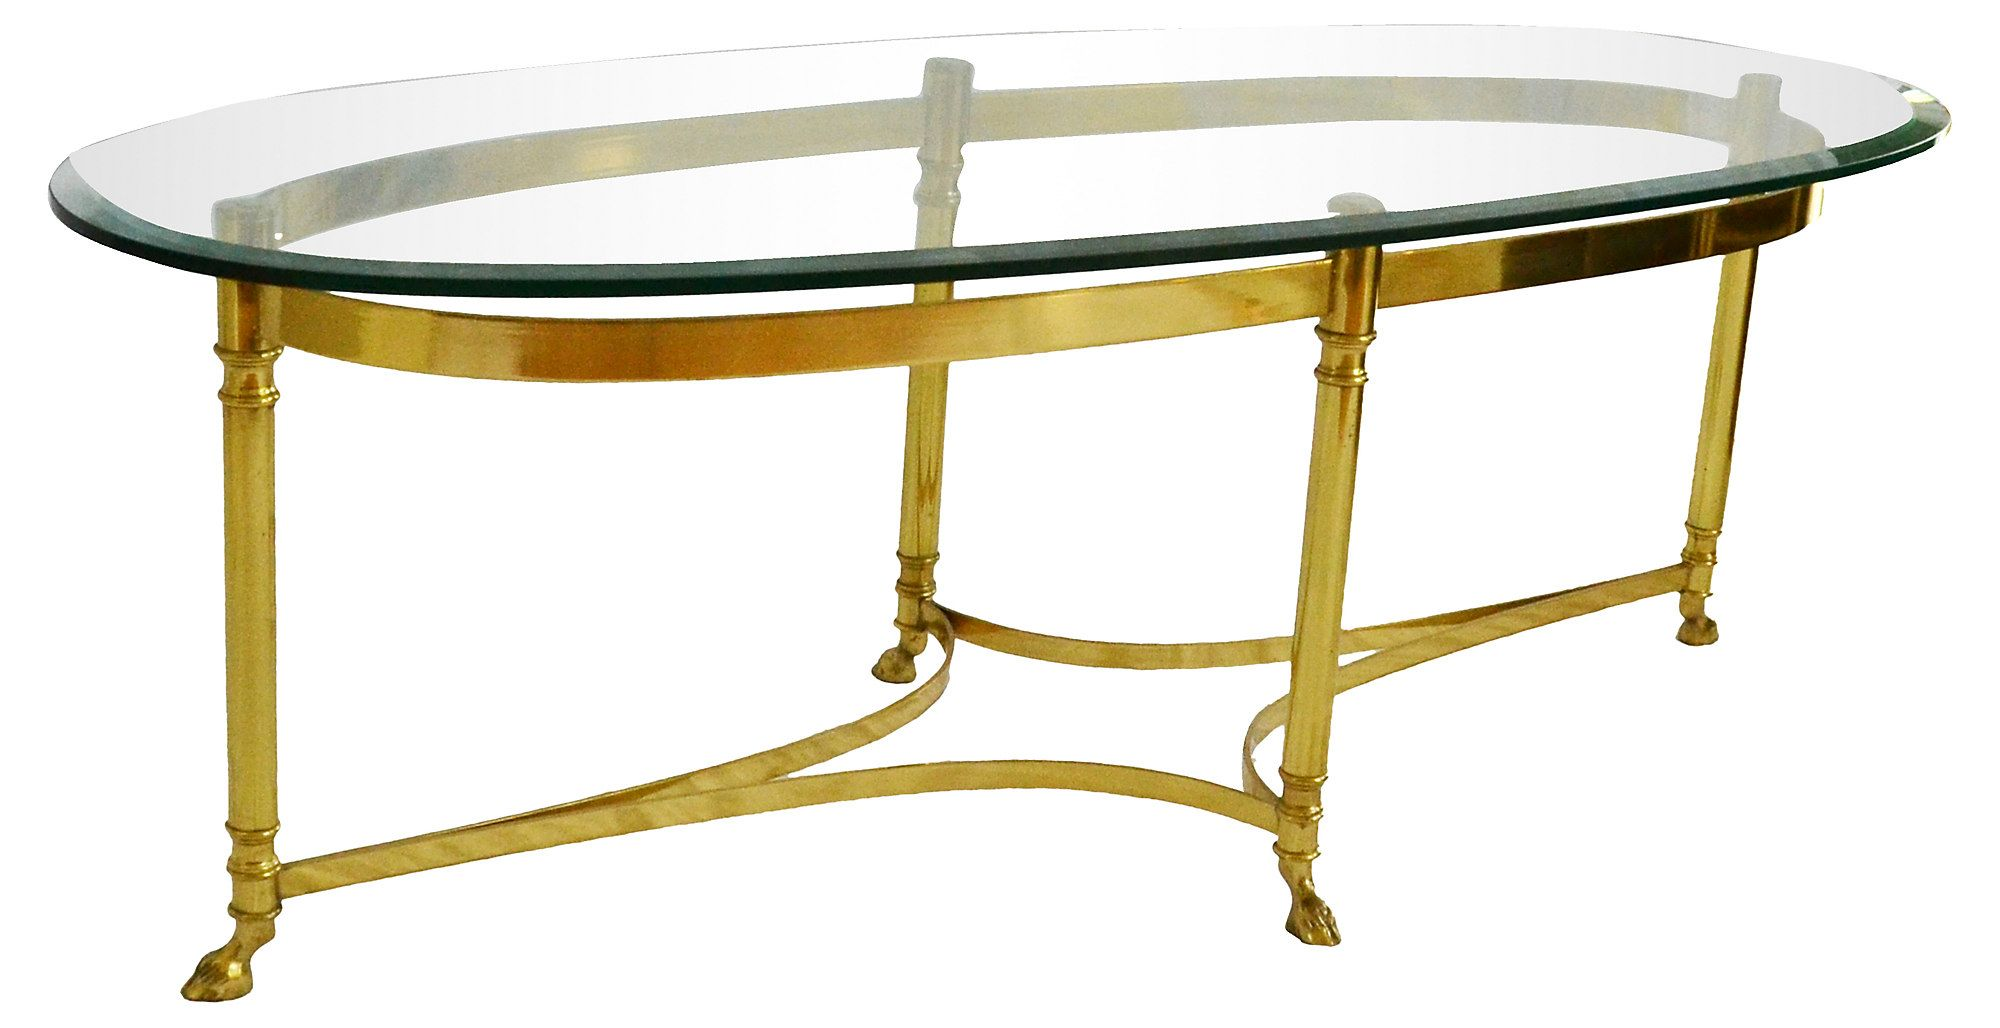 Labarge Oval Brass Cocktail Table With Dramatic Hoof Feet And A